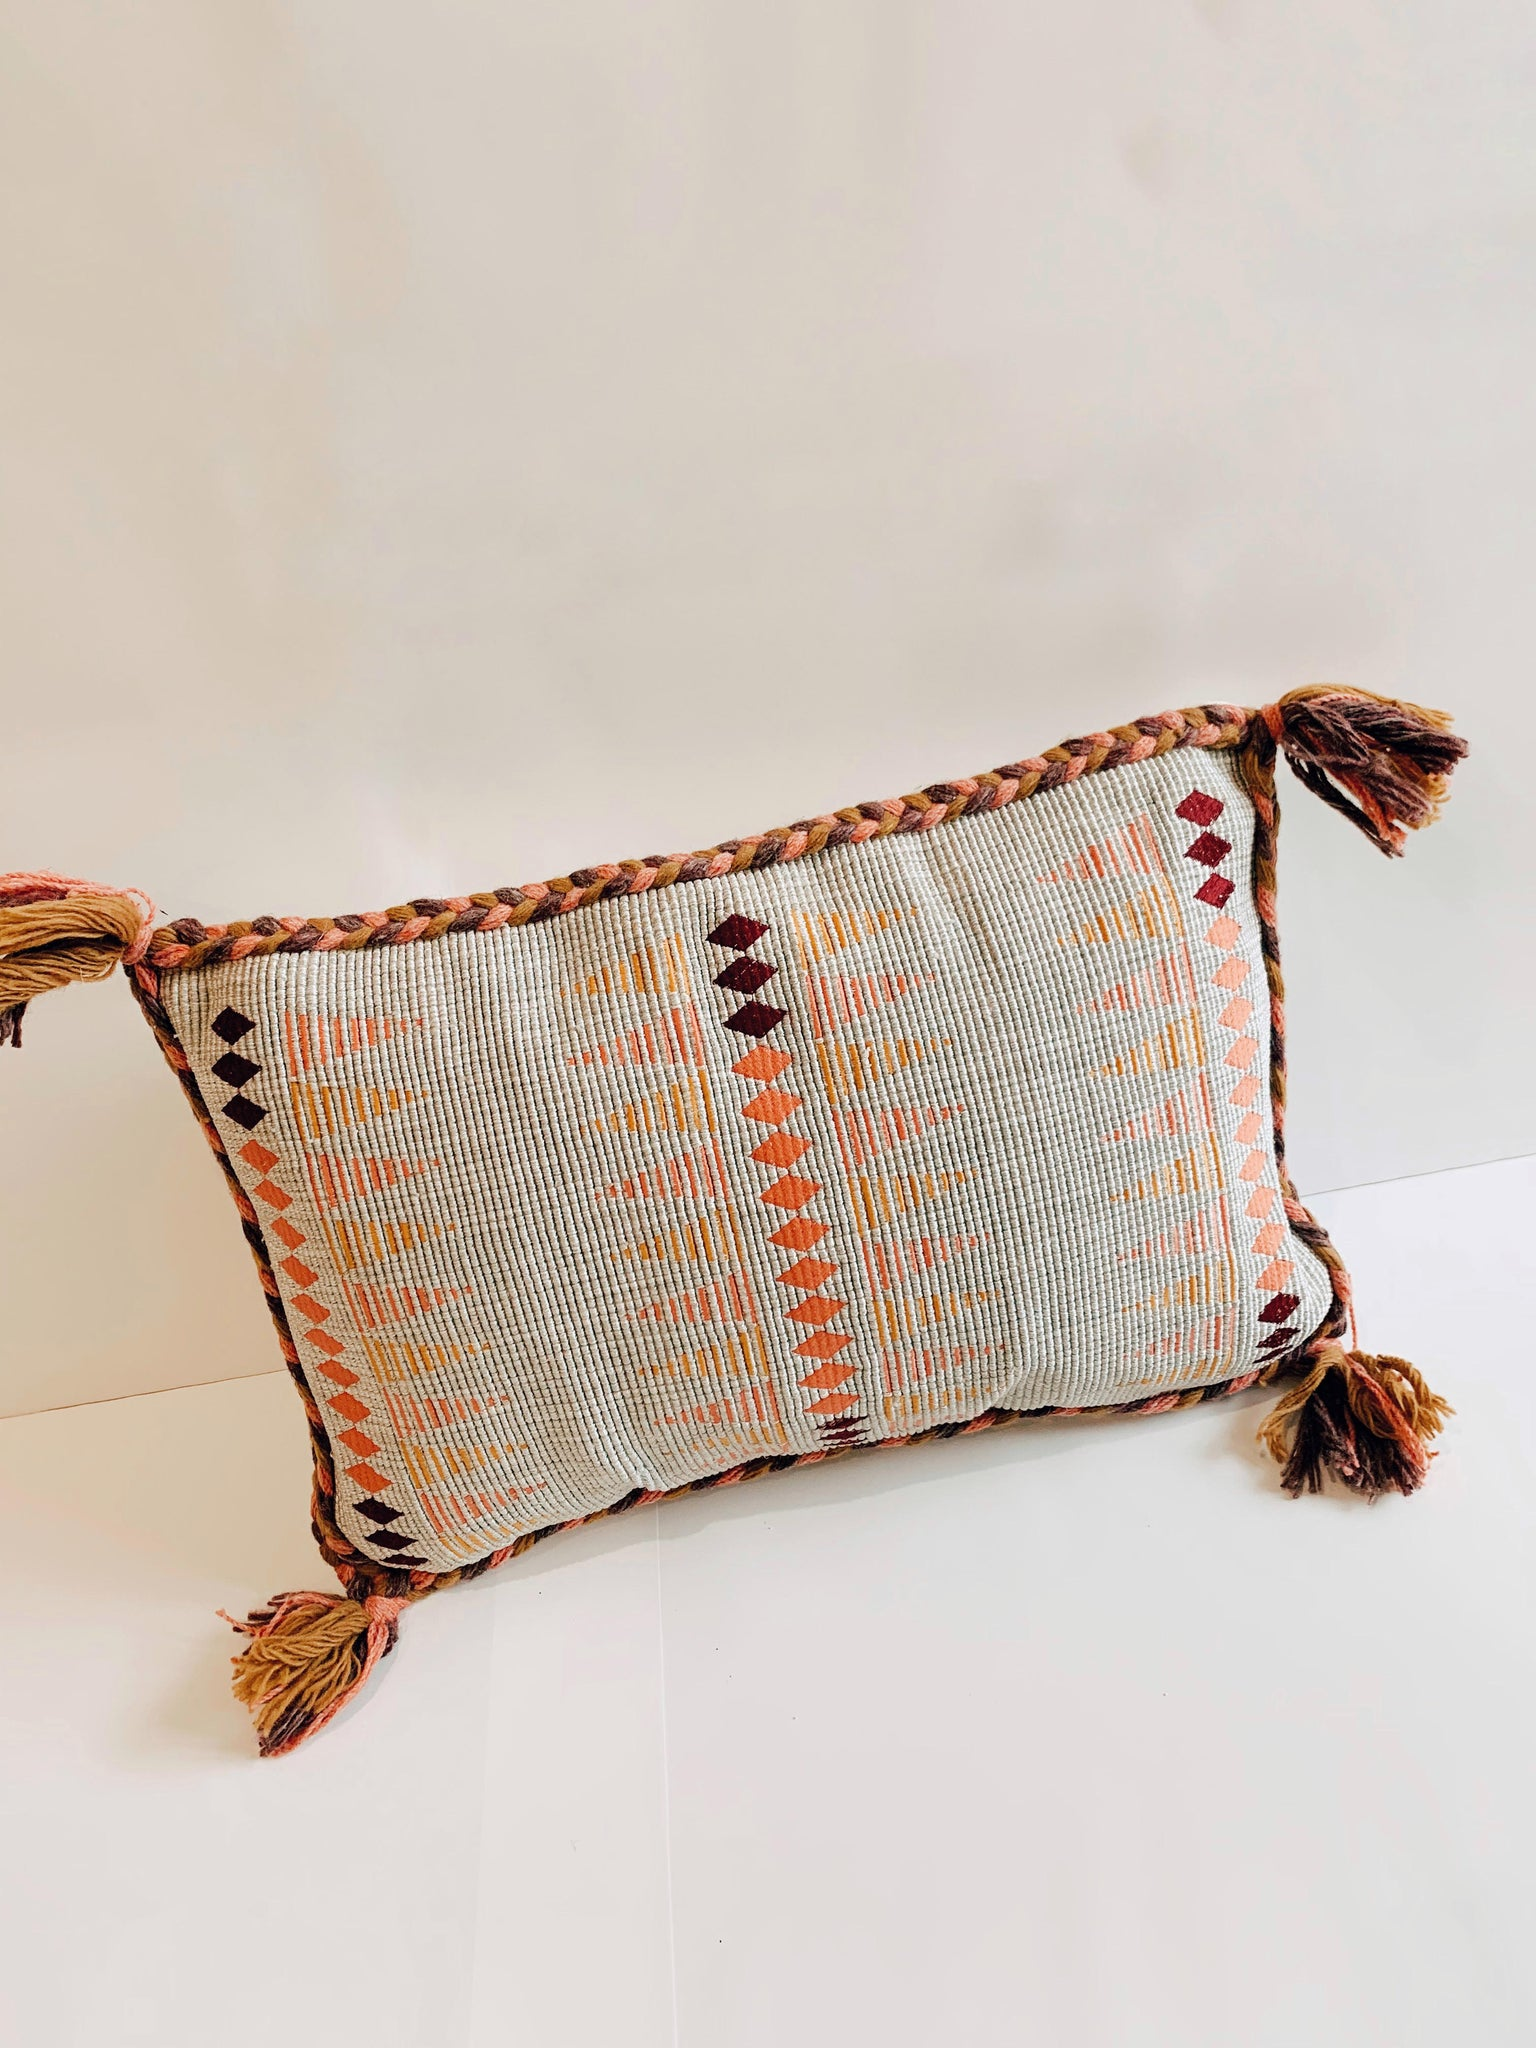 hand-crafted-decorative-rectangle-cushion-homewares